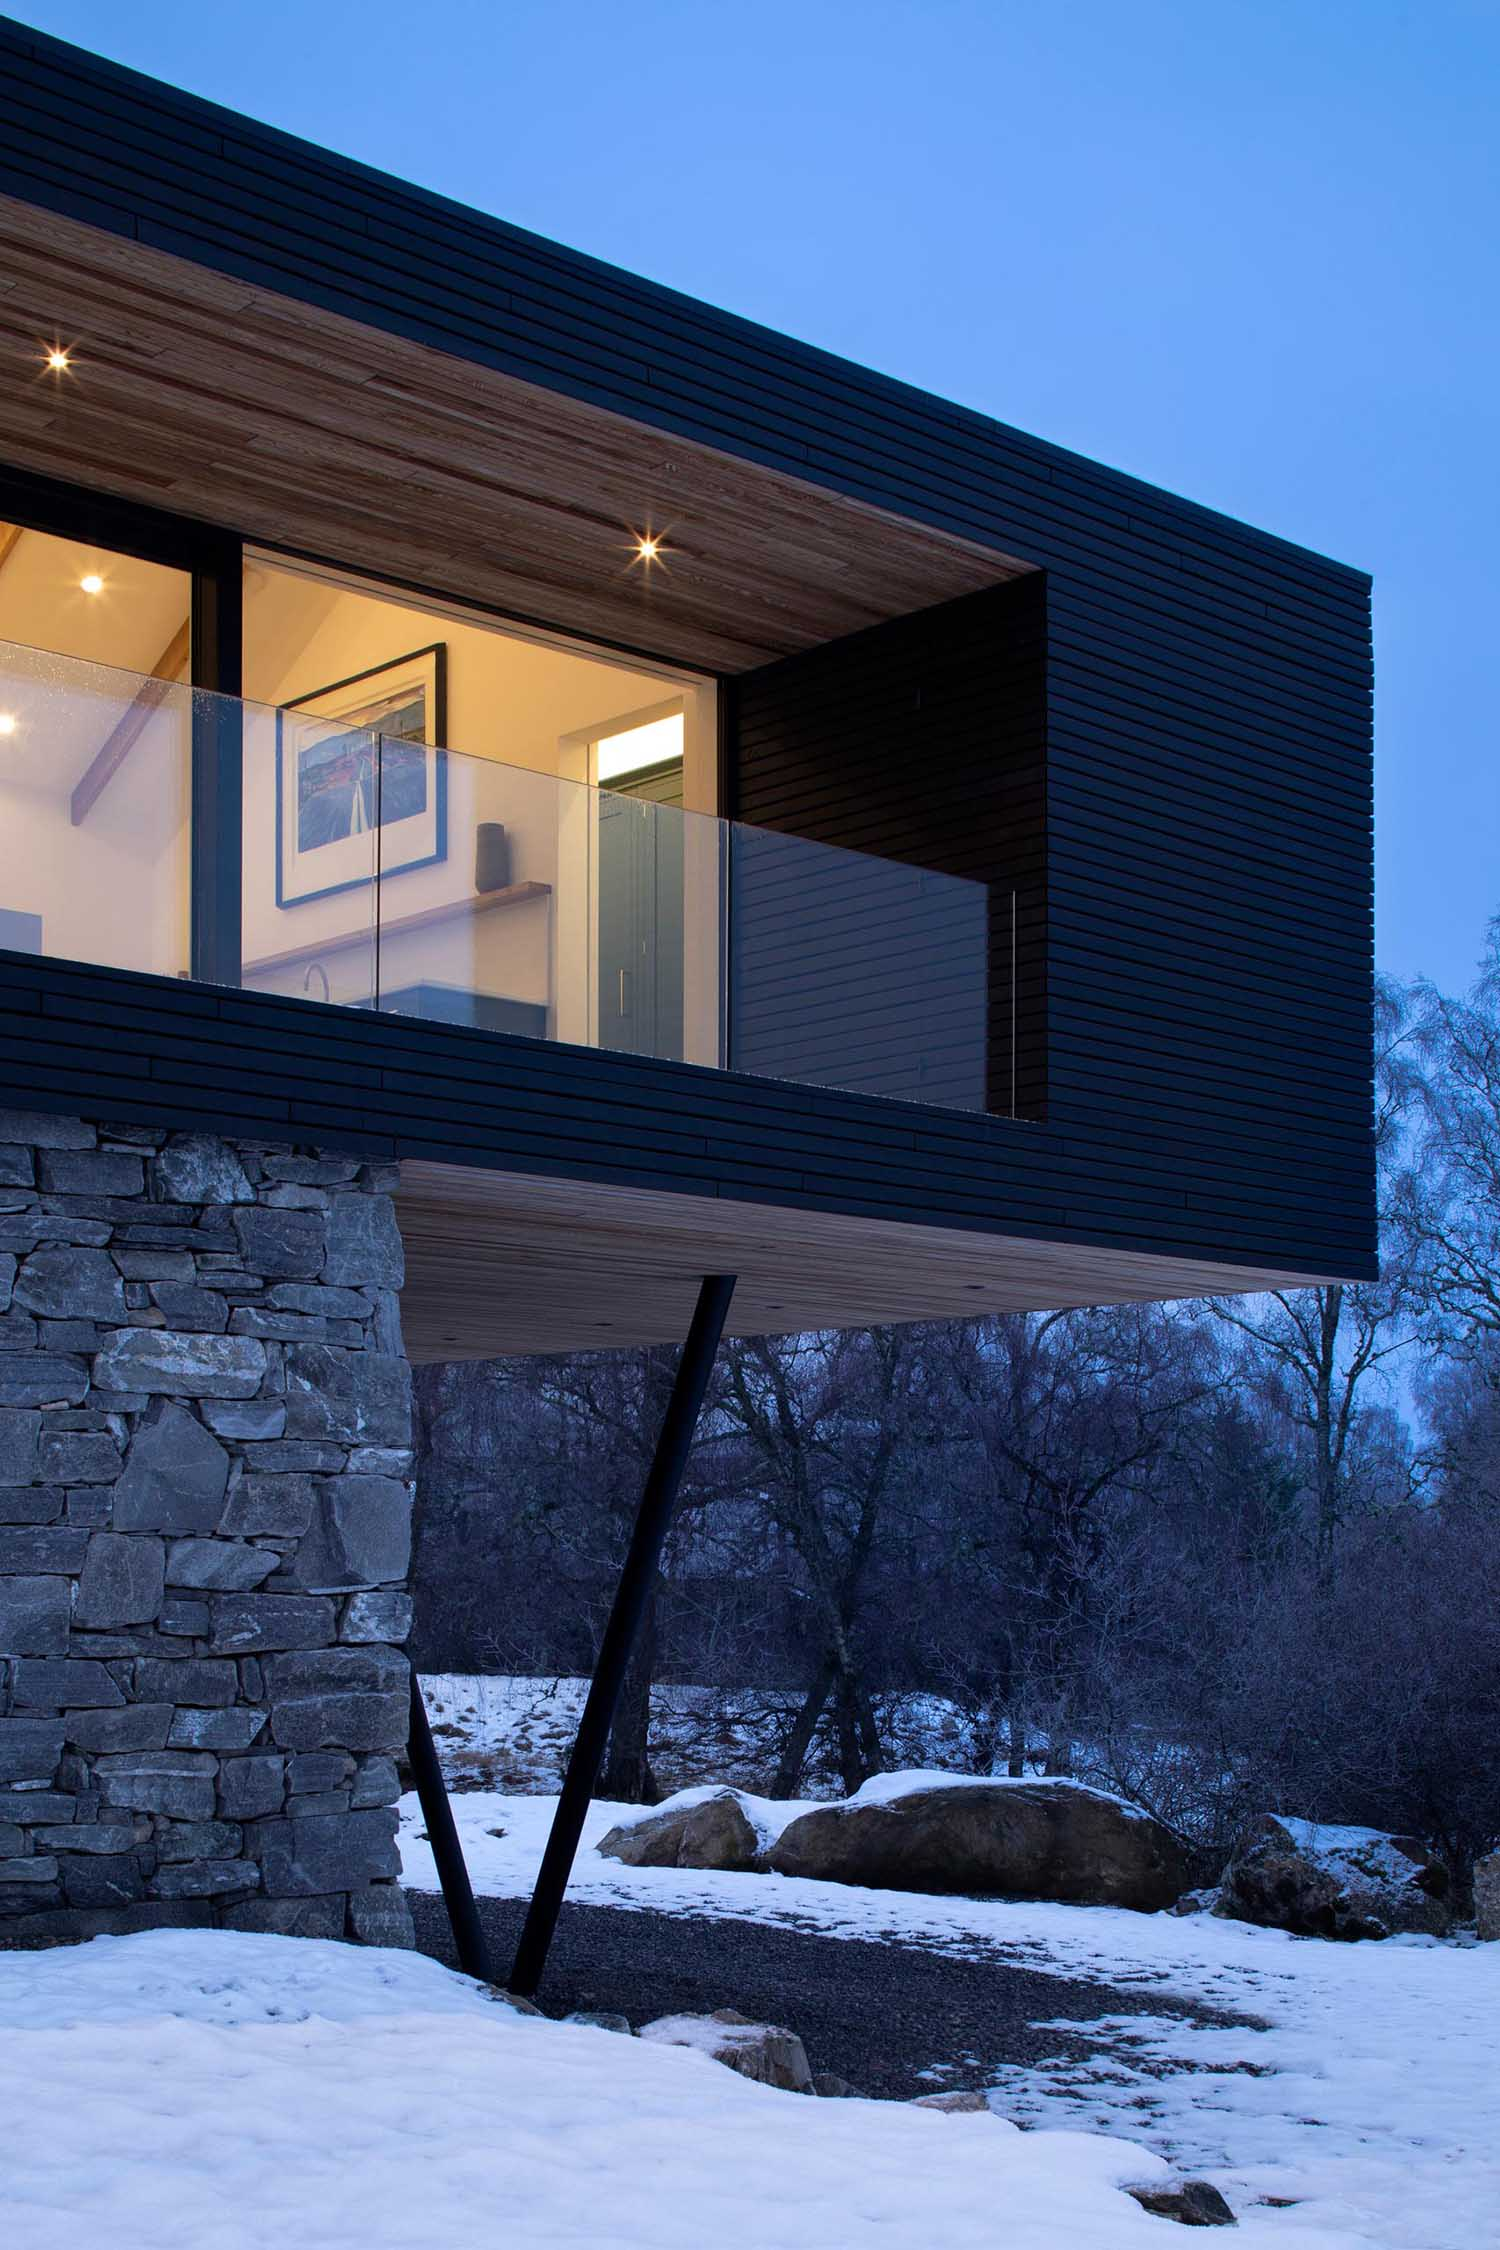 A modern home addition with a material palette of local natural stone, Siberian Larch, natural slate, blackened stainless steel, and glass.